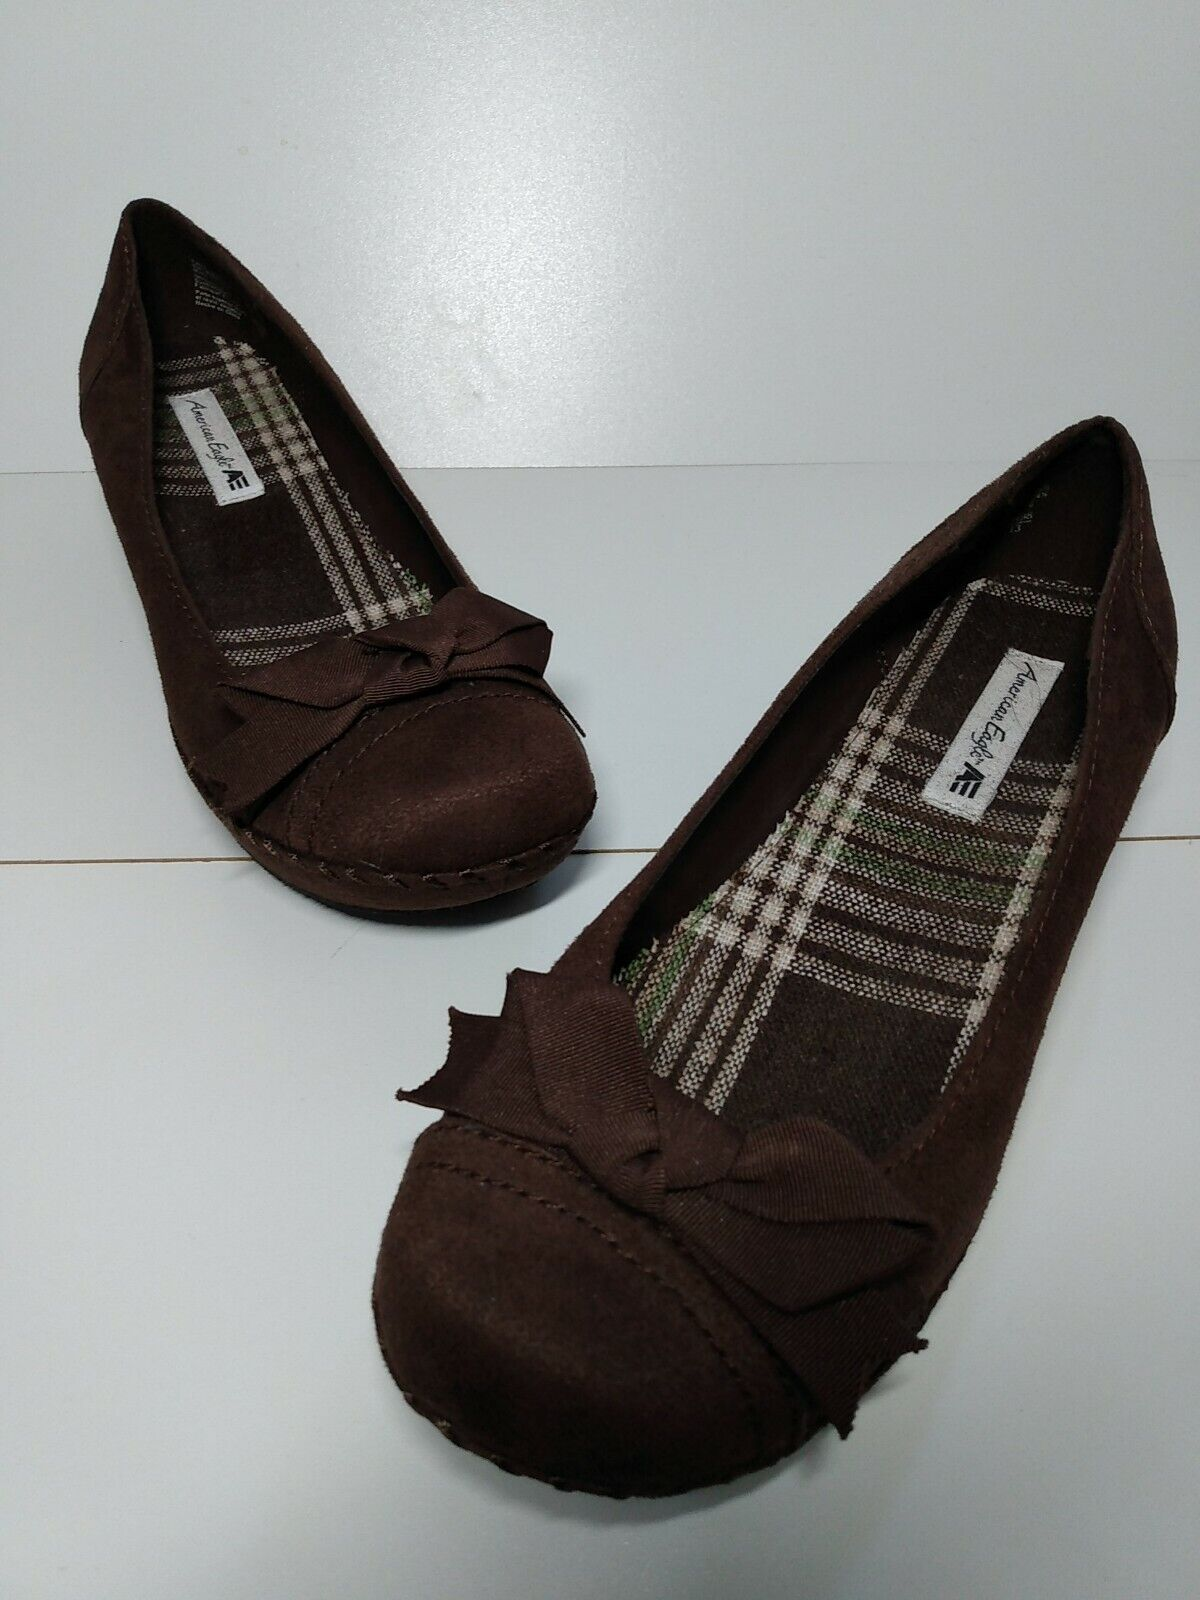 American Eagle Outfitters Womens Classic Pump Wedge Heels Shoes Brown Bow 7.5